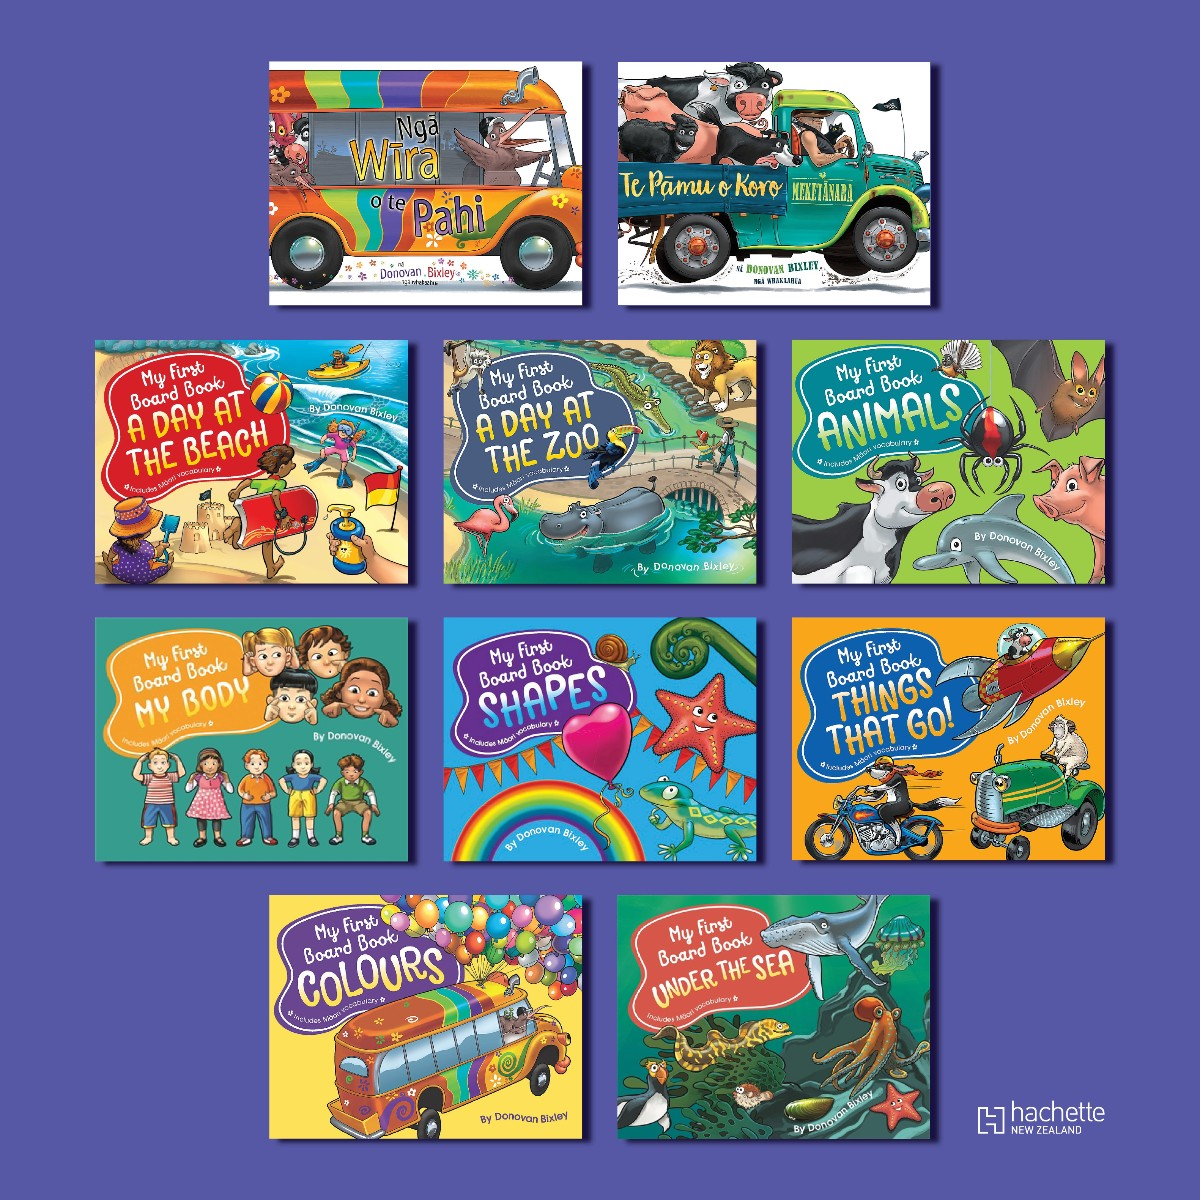 Kiwi kids can learn te reo Māori early - Board books from author Donovan Bixley are bilingual and favourite titles like NGĀ WIRA O TE PAHI and TE PĀMU O MEKETĀNARA are available in te Reo and English.  Find children's activity sheets from Donovan here: https://t.co/zMzJAvP36I https://t.co/vHojvJb6hH